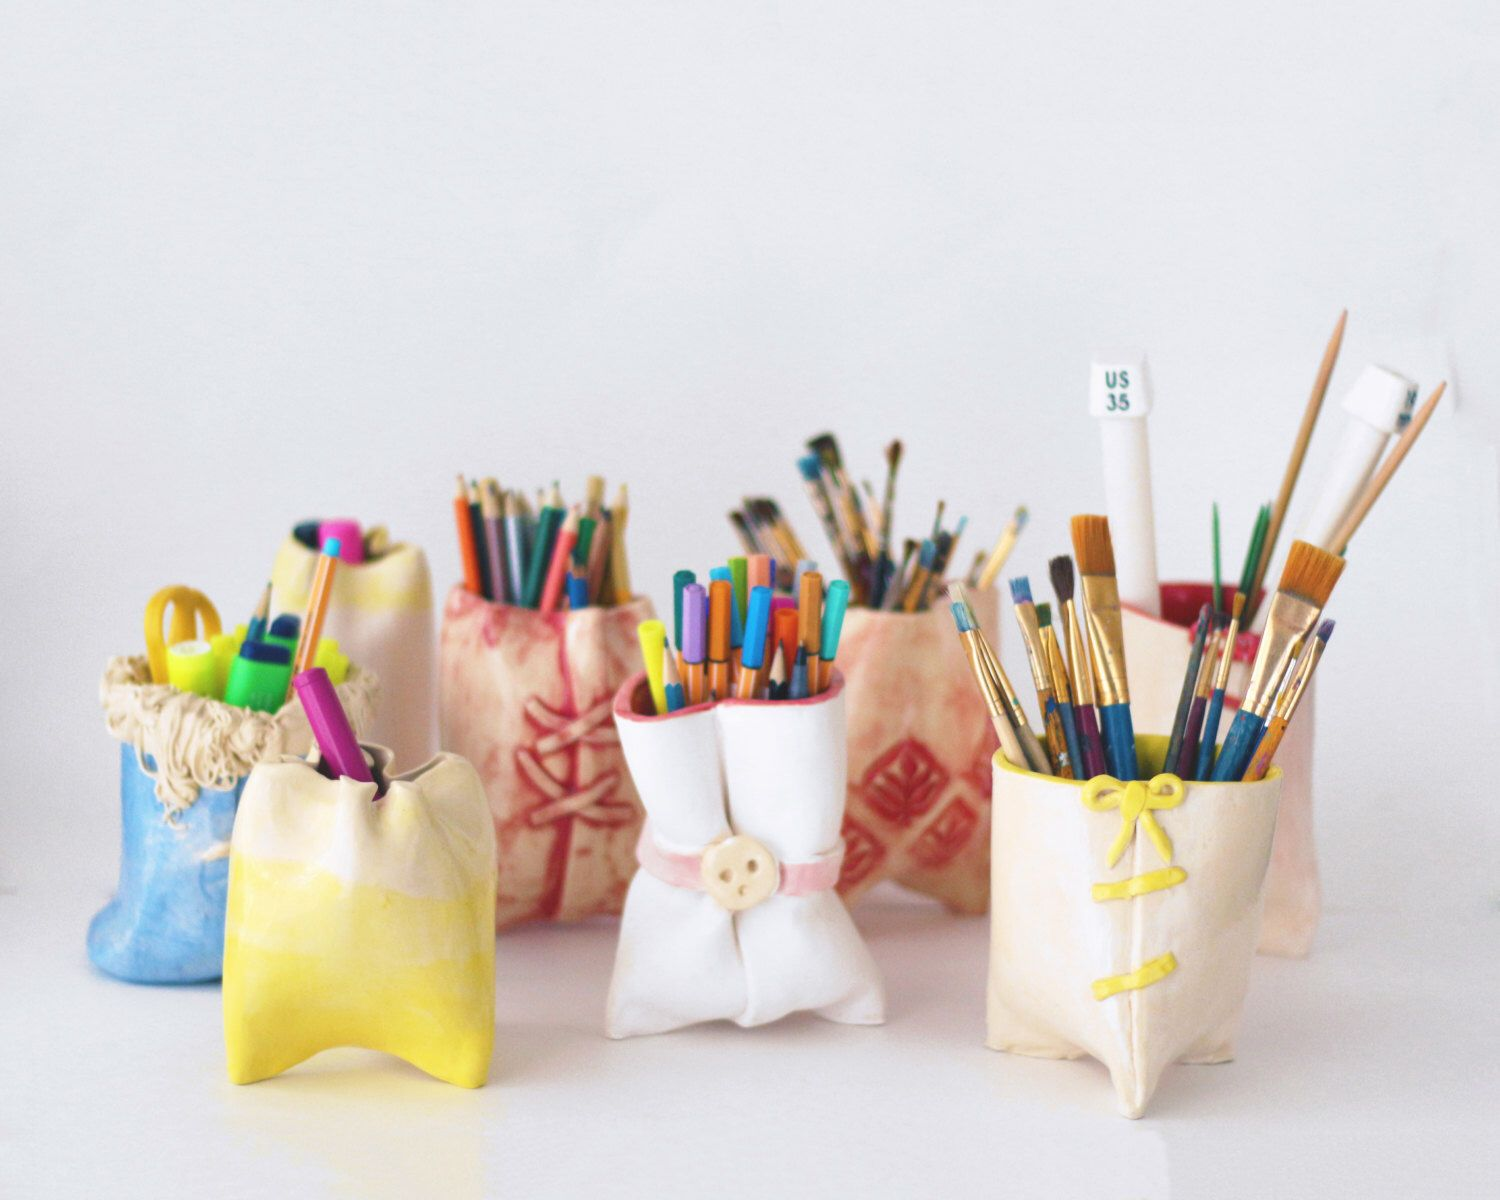 Funding on @Etsy: Colorful Ceramic Cups / Pen Holders! #fundonetsy https://www.etsy.com/listing/232653033/colorful-ceramic-cups-pen-holders